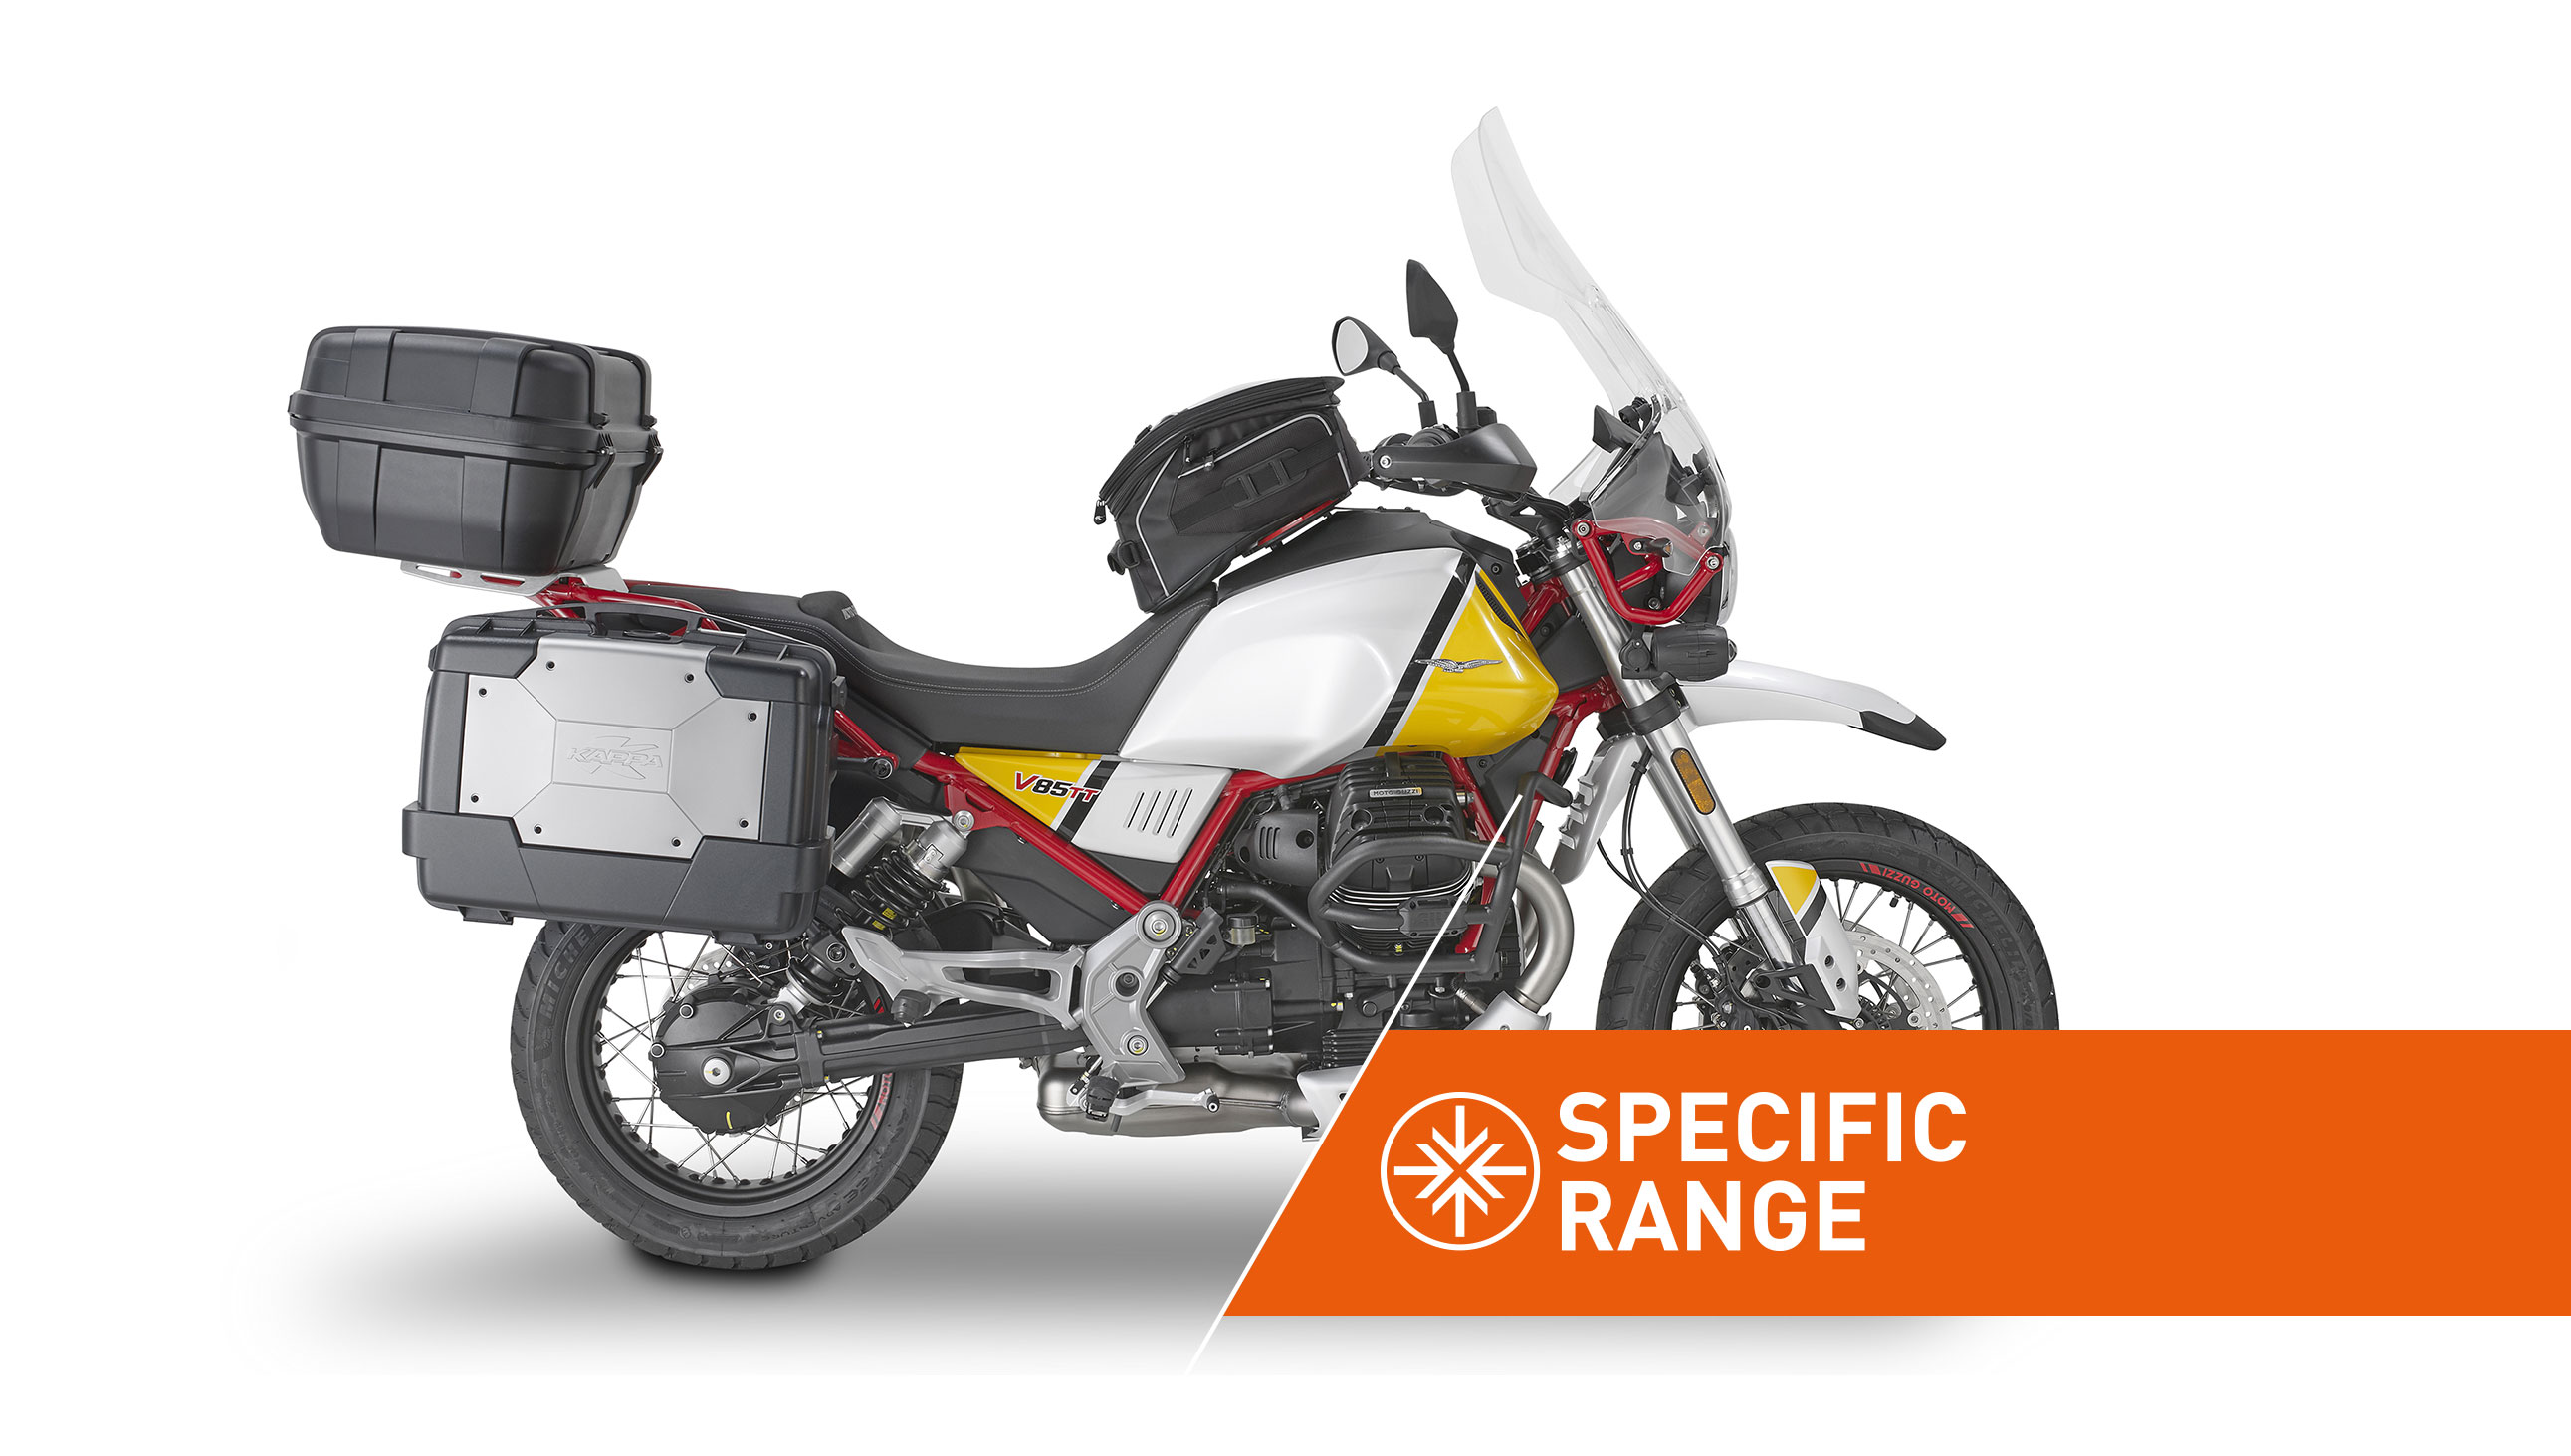 Specific range accessories for MOTO GUZZI V85 TT by KAPPA MOTO